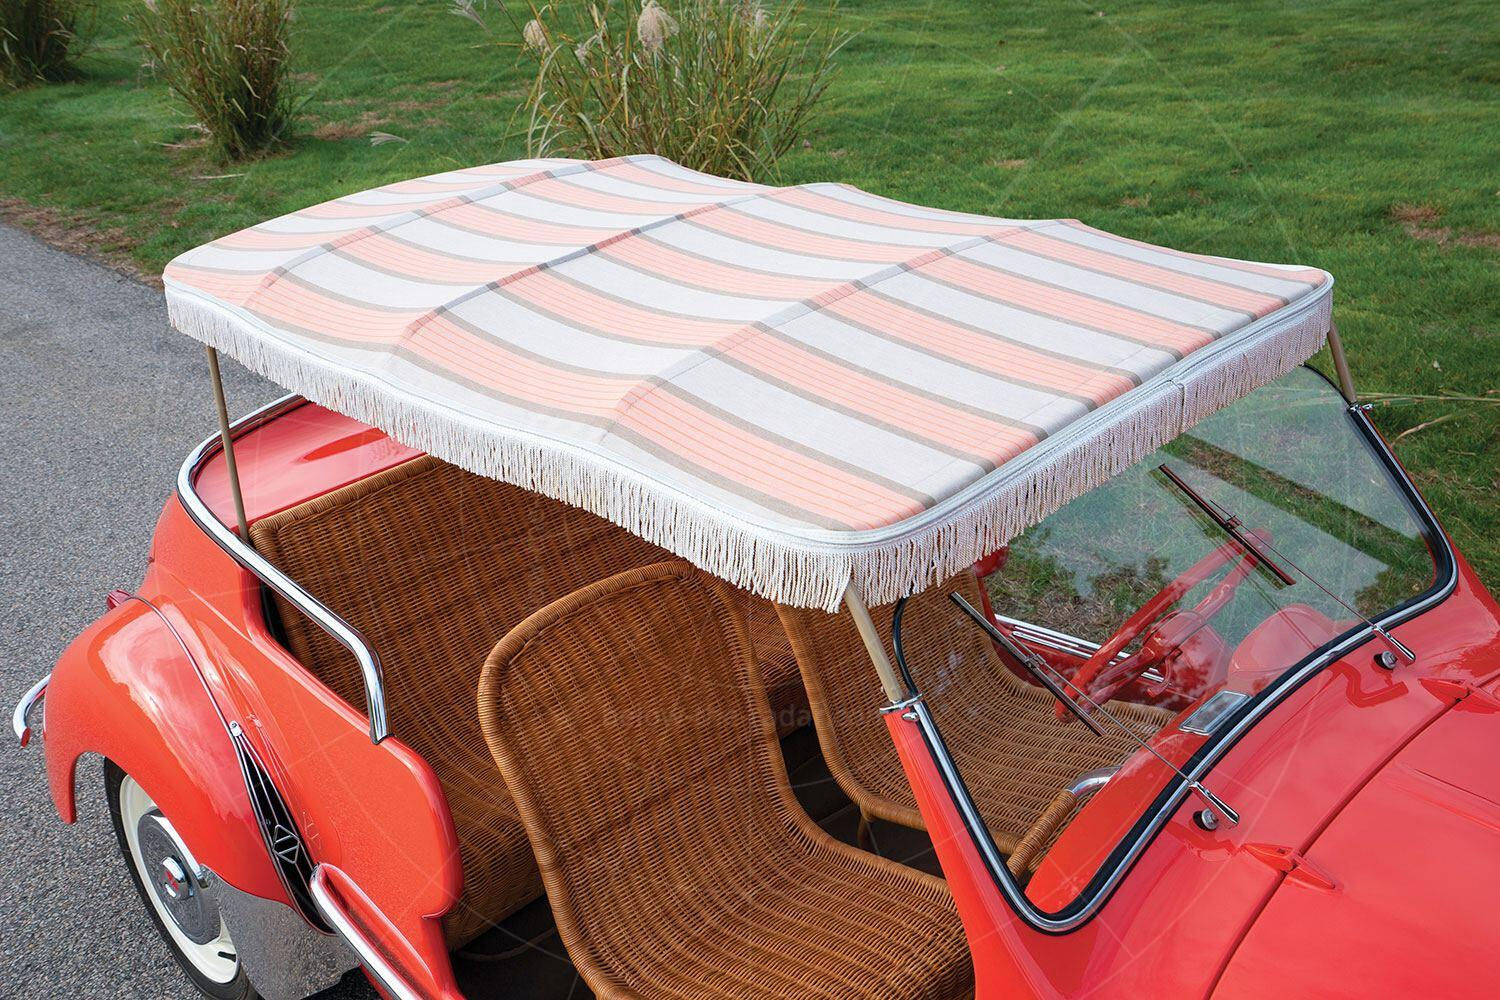 Renault 4CV Jolly canopy Pic: RM Sotheby's   Renault 4CV Jolly canopy